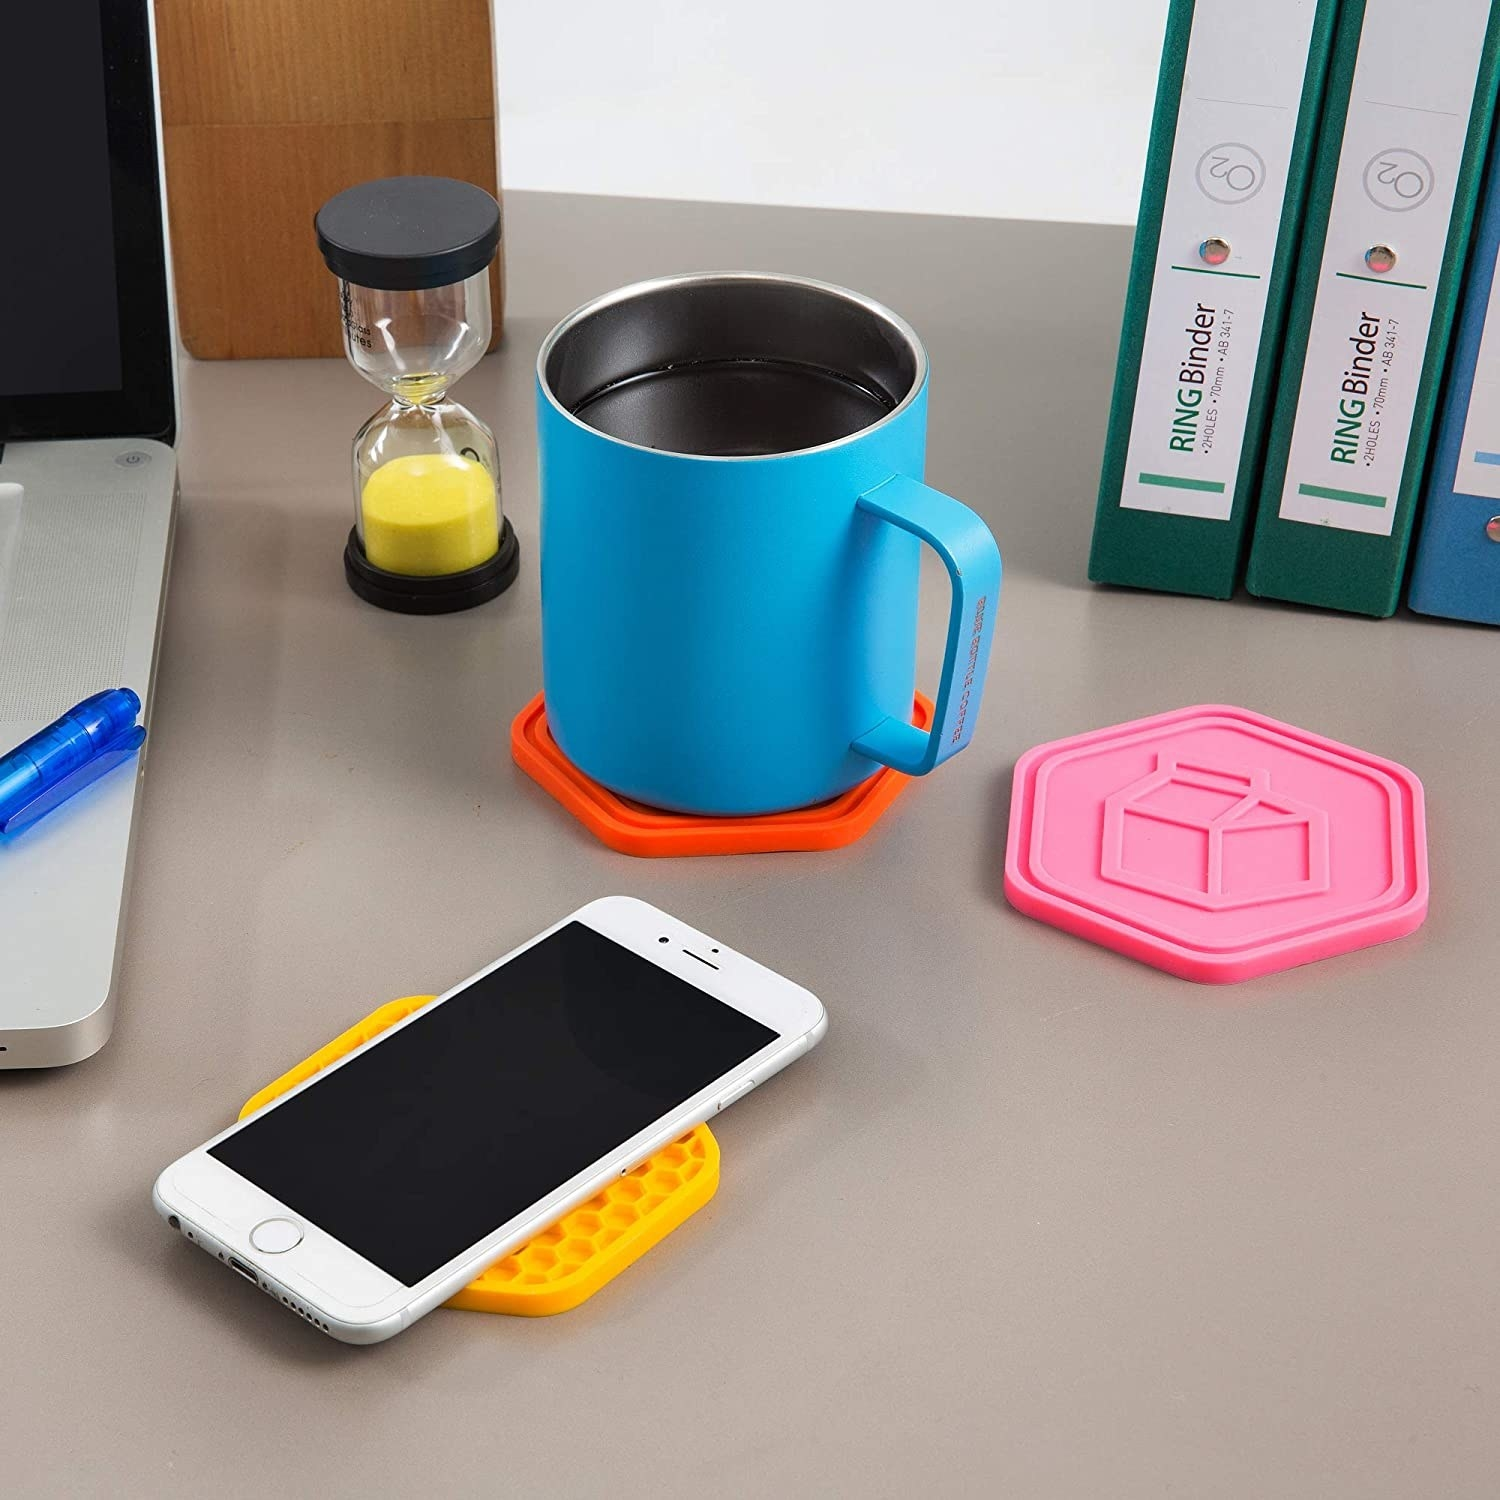 A trio of coasters on a desk, topped with a mug and a cell phone